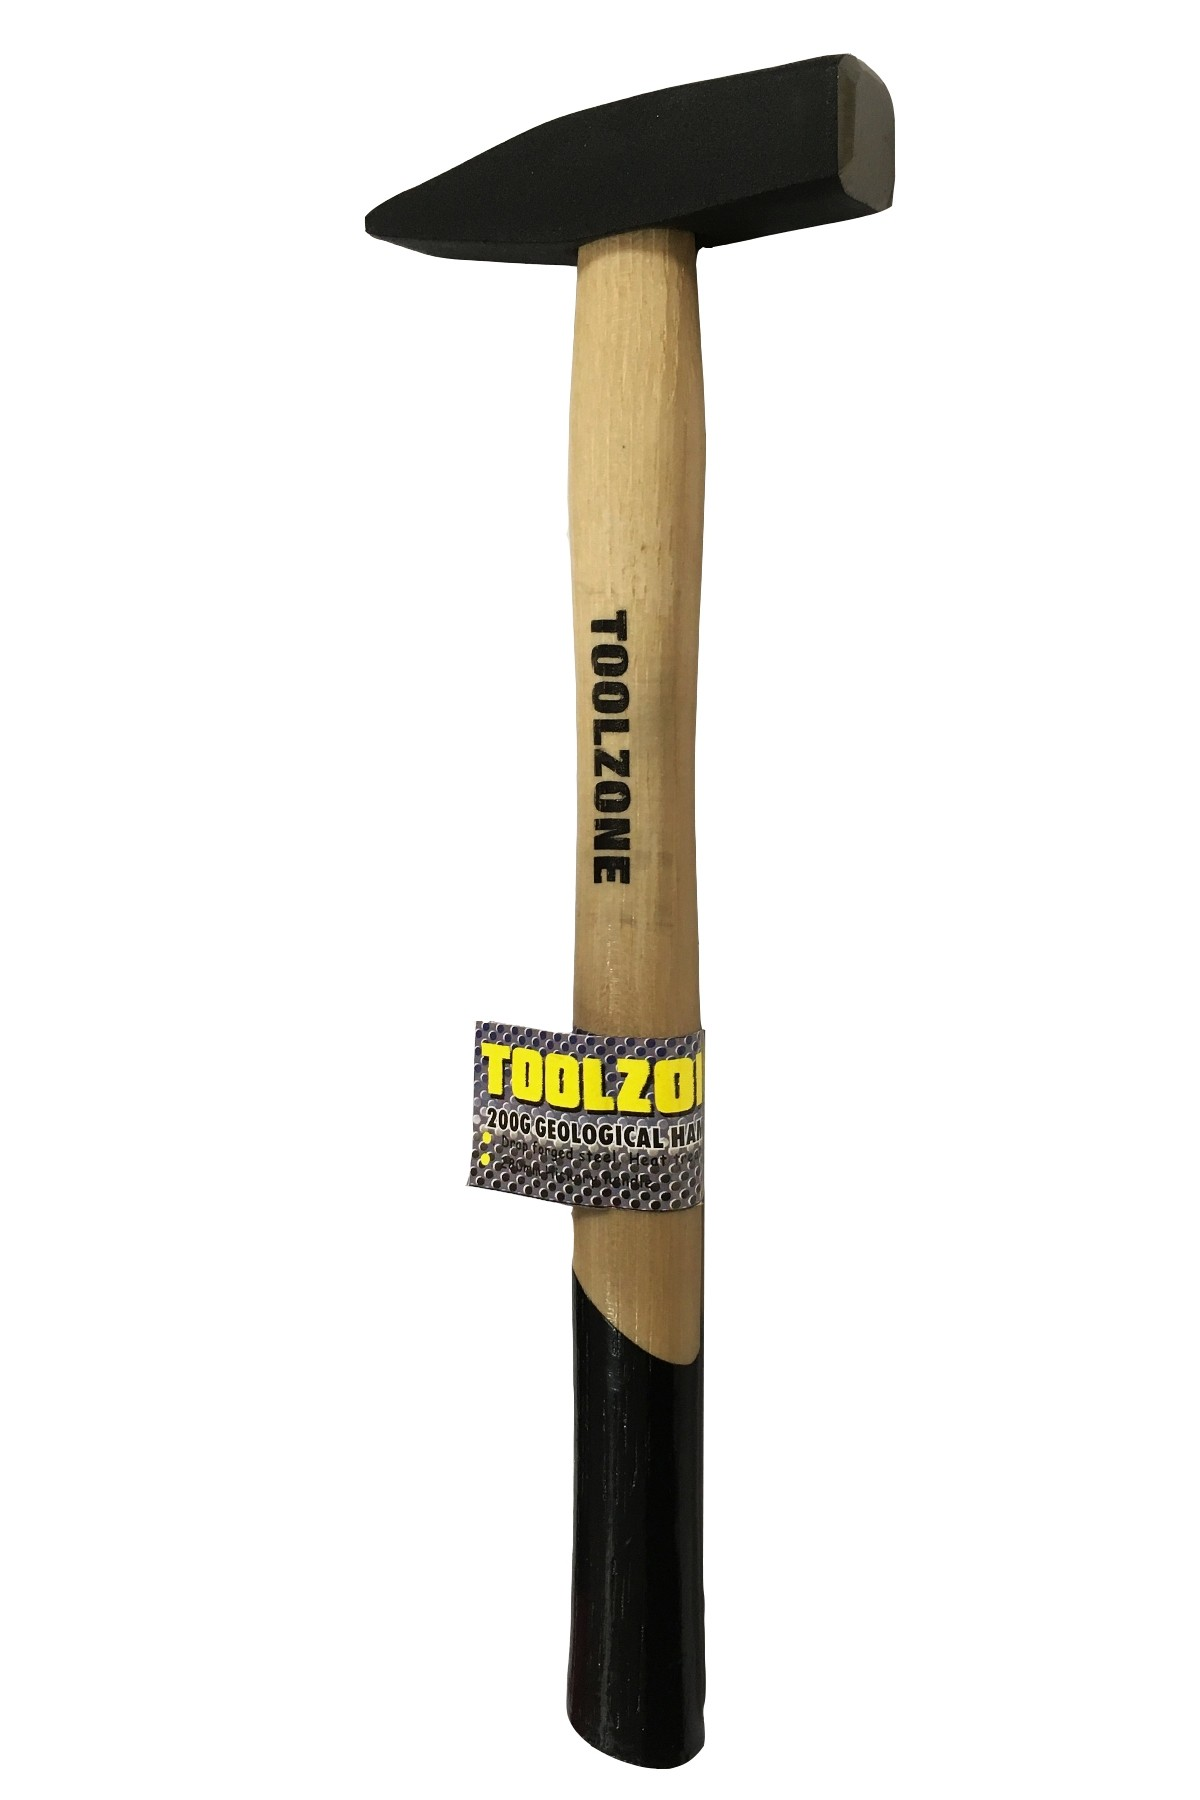 Toolzone Geologist's Hammer 200g